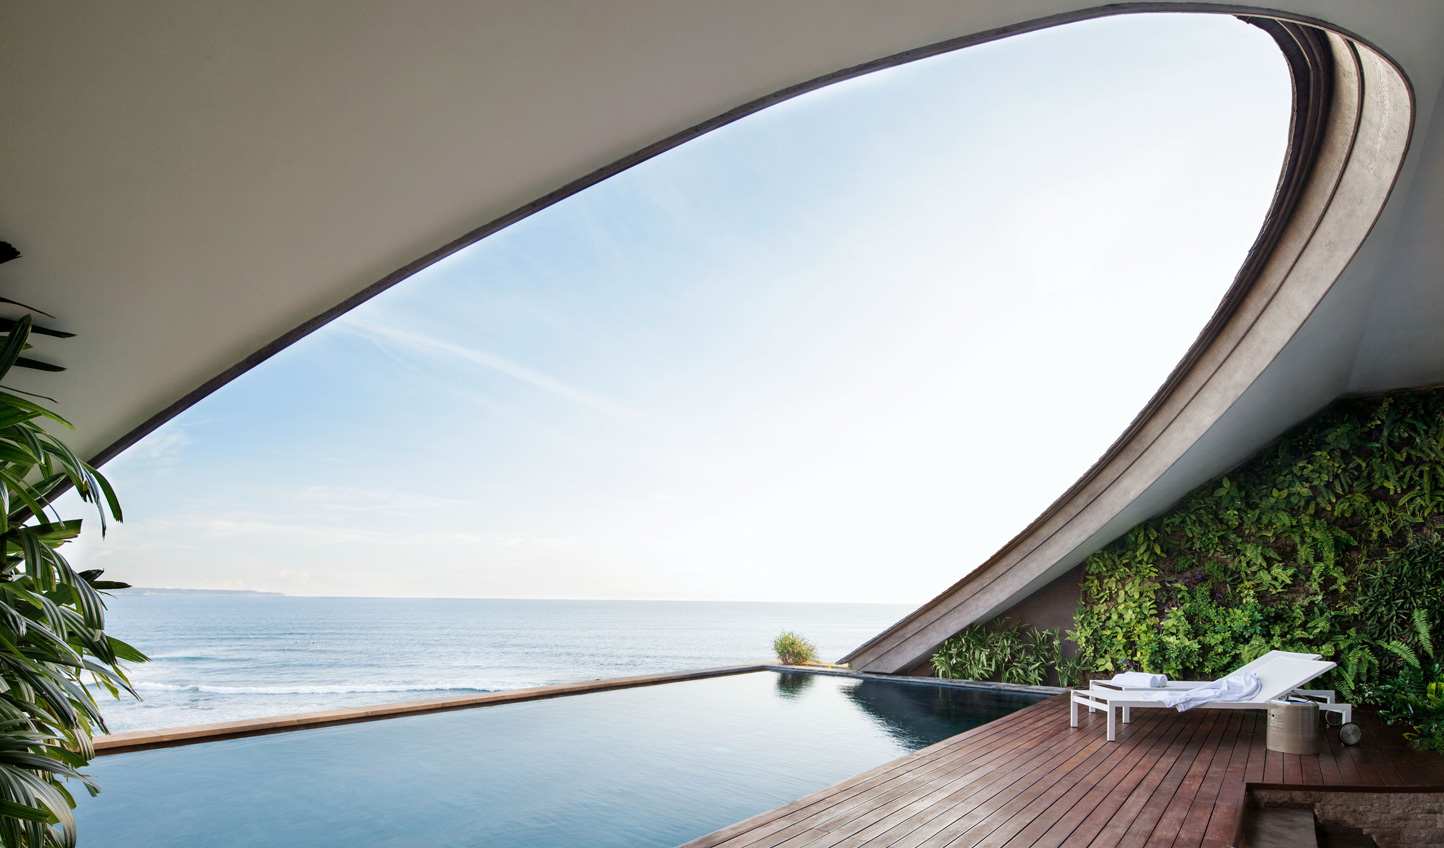 Stunning design that brings an air of sophistication to surfer chic Canggu